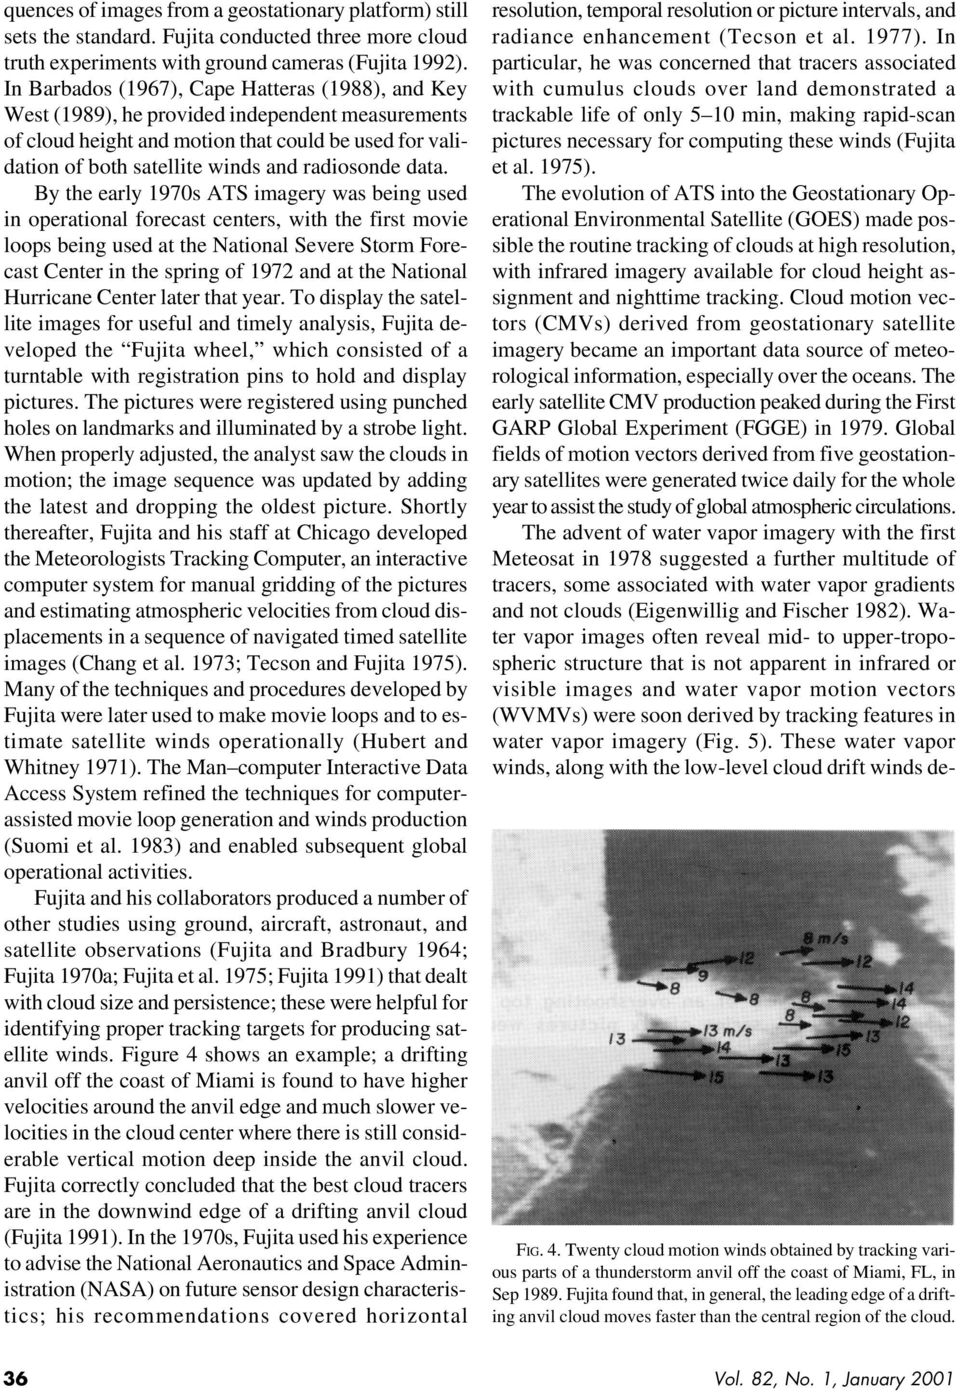 data. By the early 1970s ATS imagery was being used in operational forecast centers, with the first movie loops being used at the National Severe Storm Forecast Center in the spring of 1972 and at